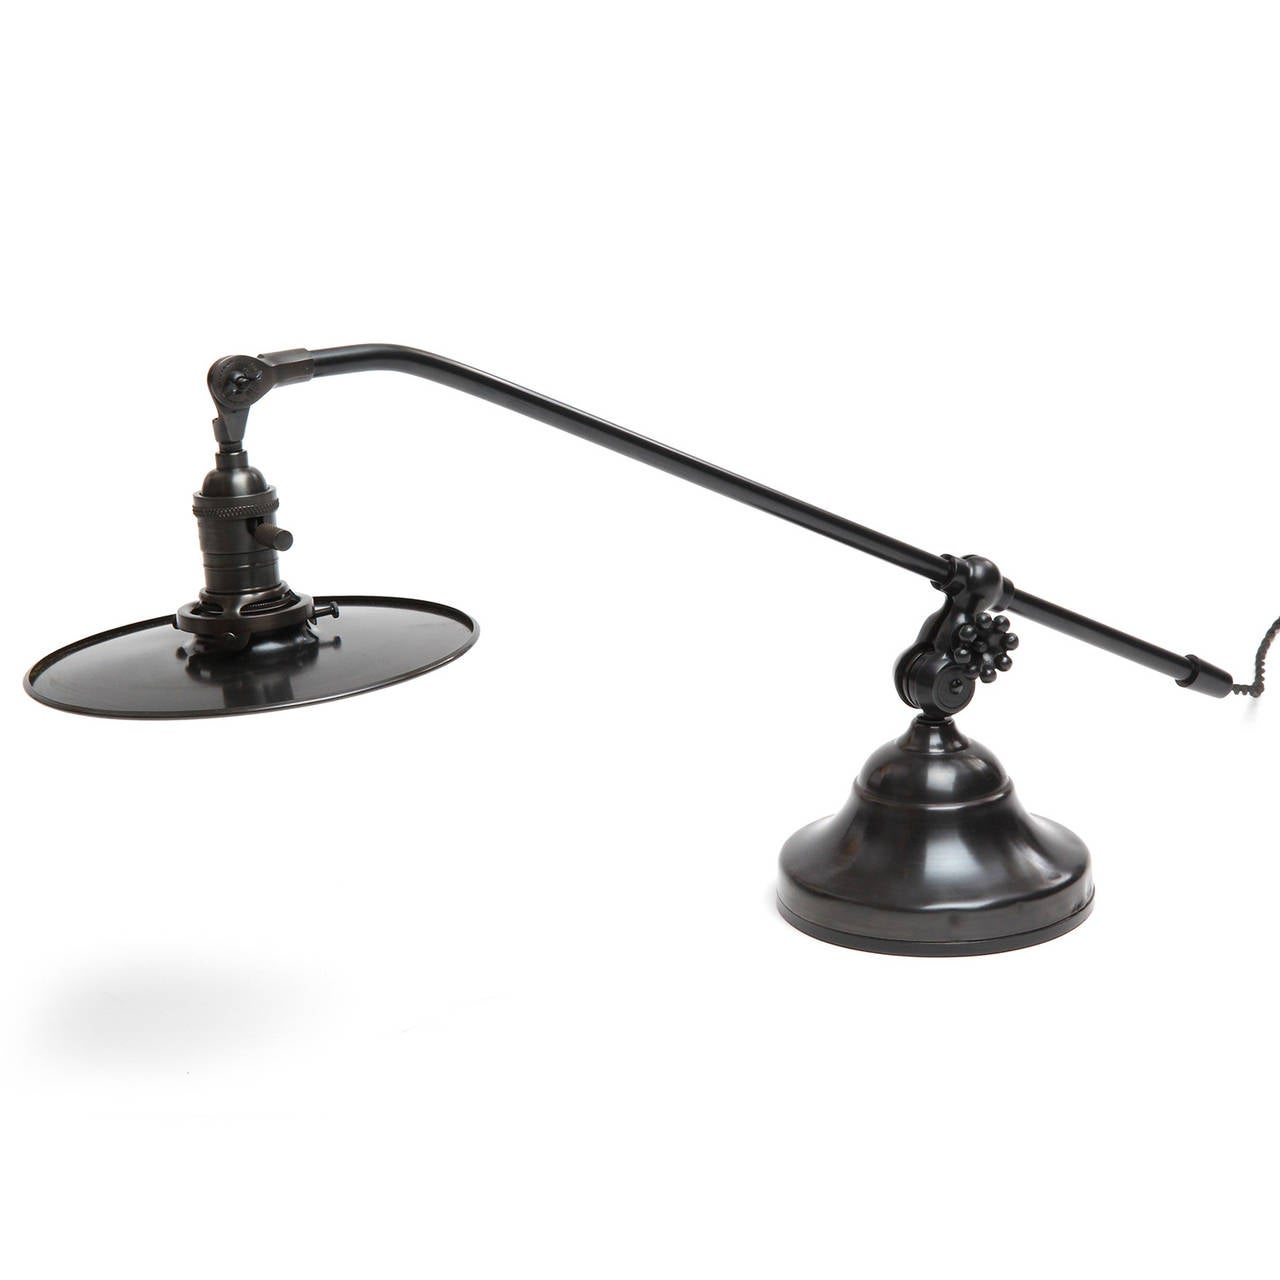 Articulating Desk Lamp by O.C. White For Sale at 1stdibs